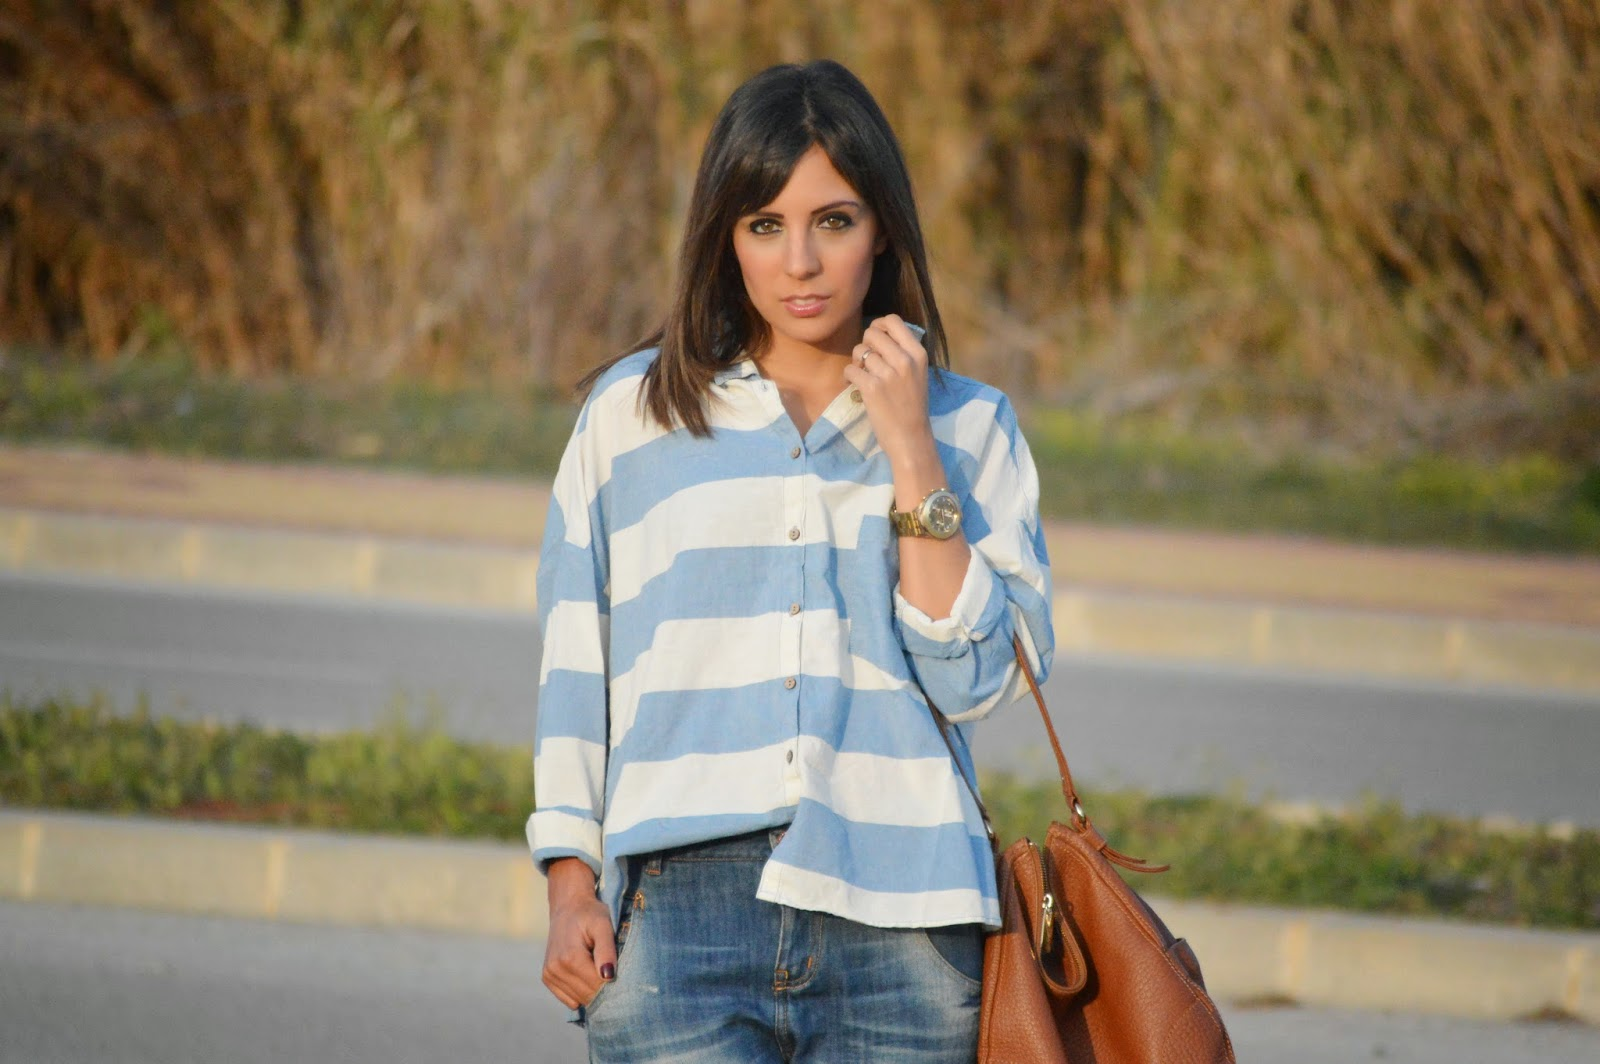 street style style cristina style fashion blogger malagueña blogger malagueña outfit look chic casual tendencias moda mood ootd inspiration fashion zara